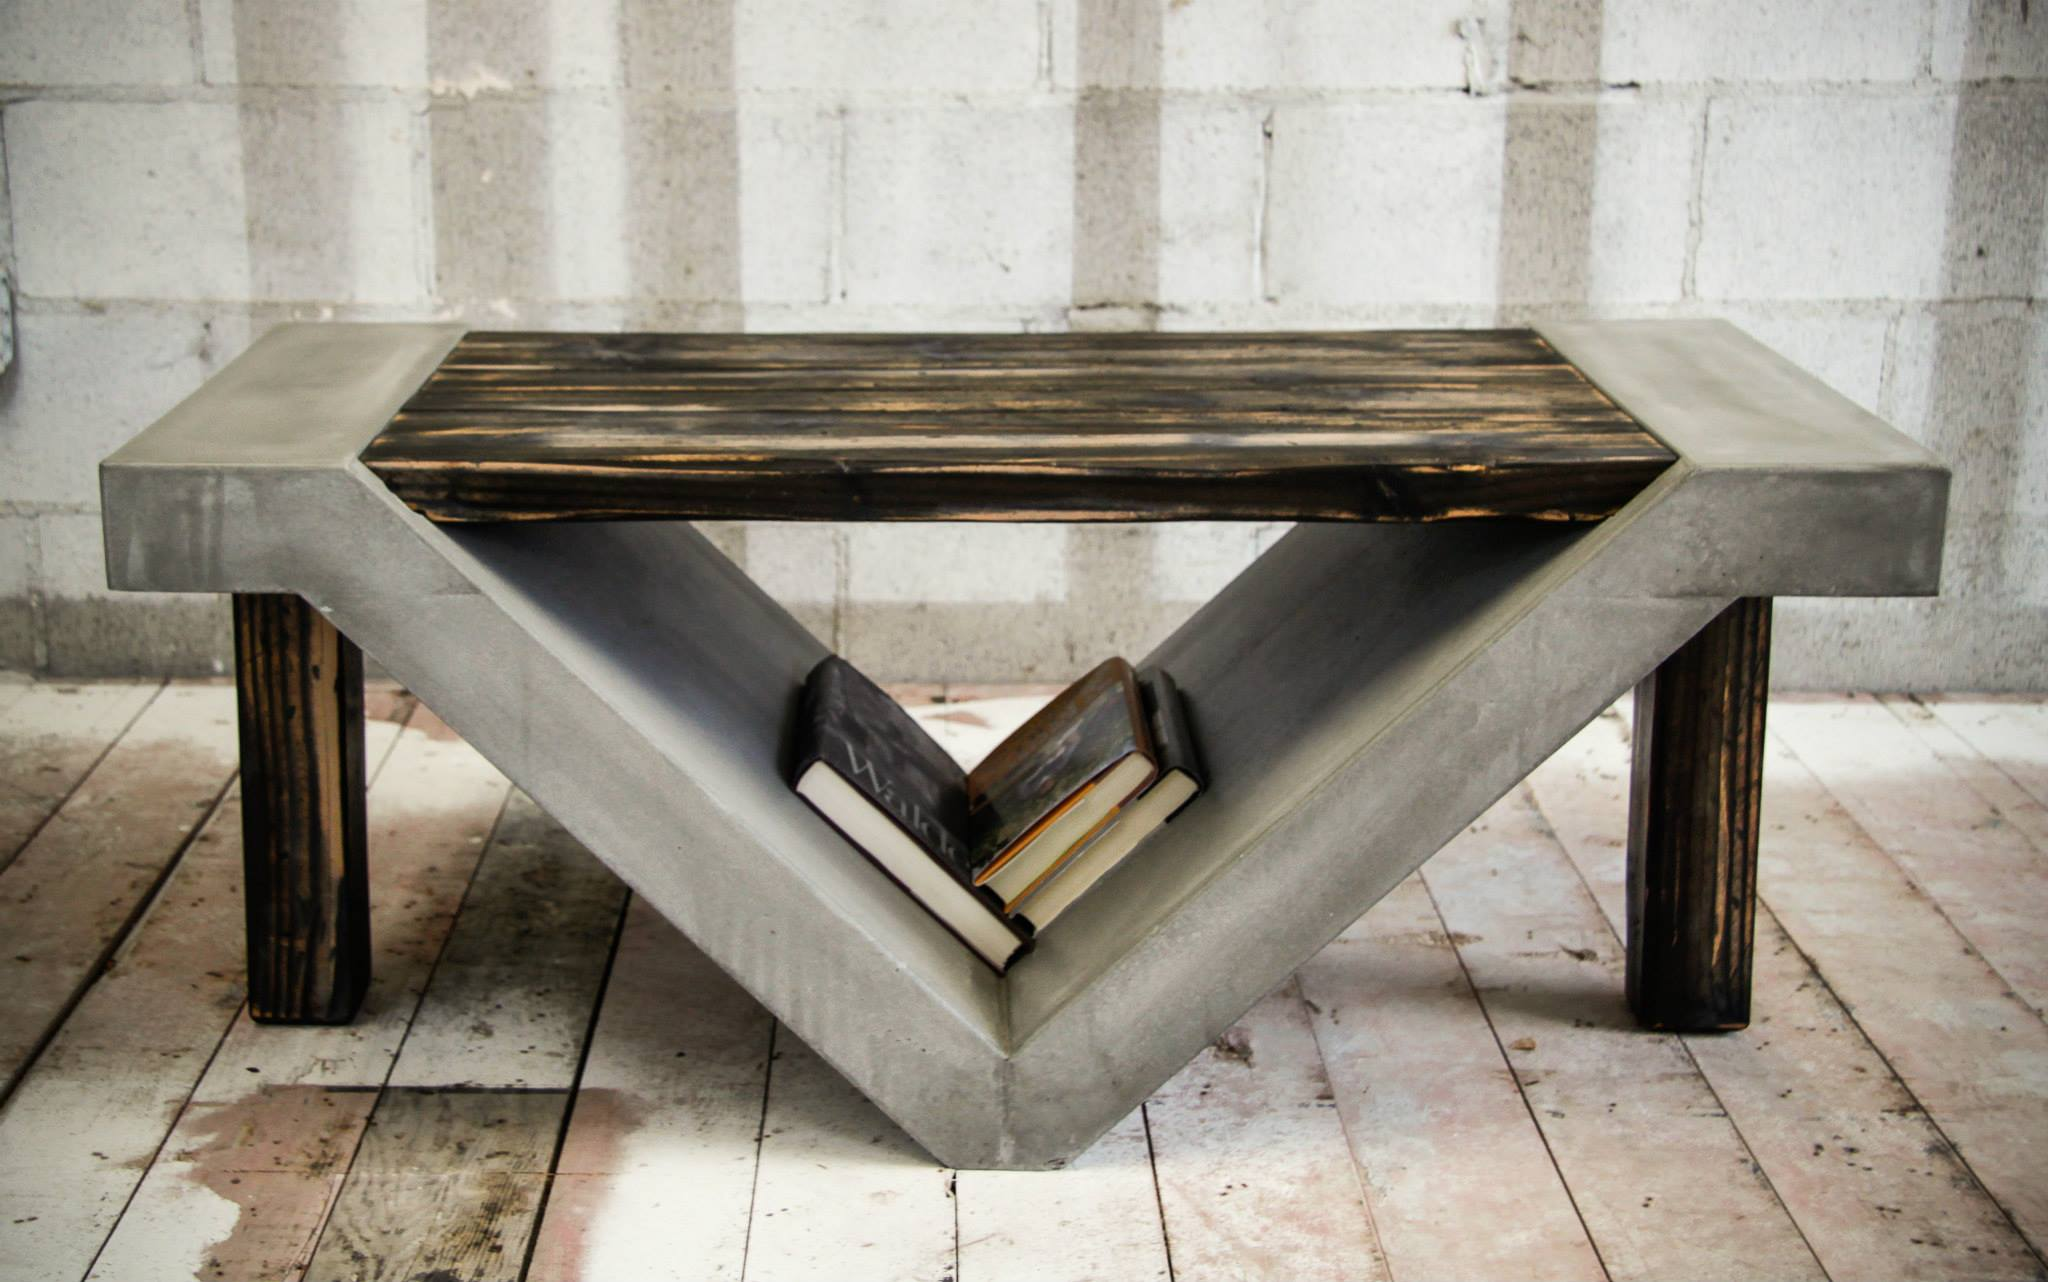 concrete perfect reason concrete kitchen table The slanted storage space beneath this table is perfect for tucking away books and magazines